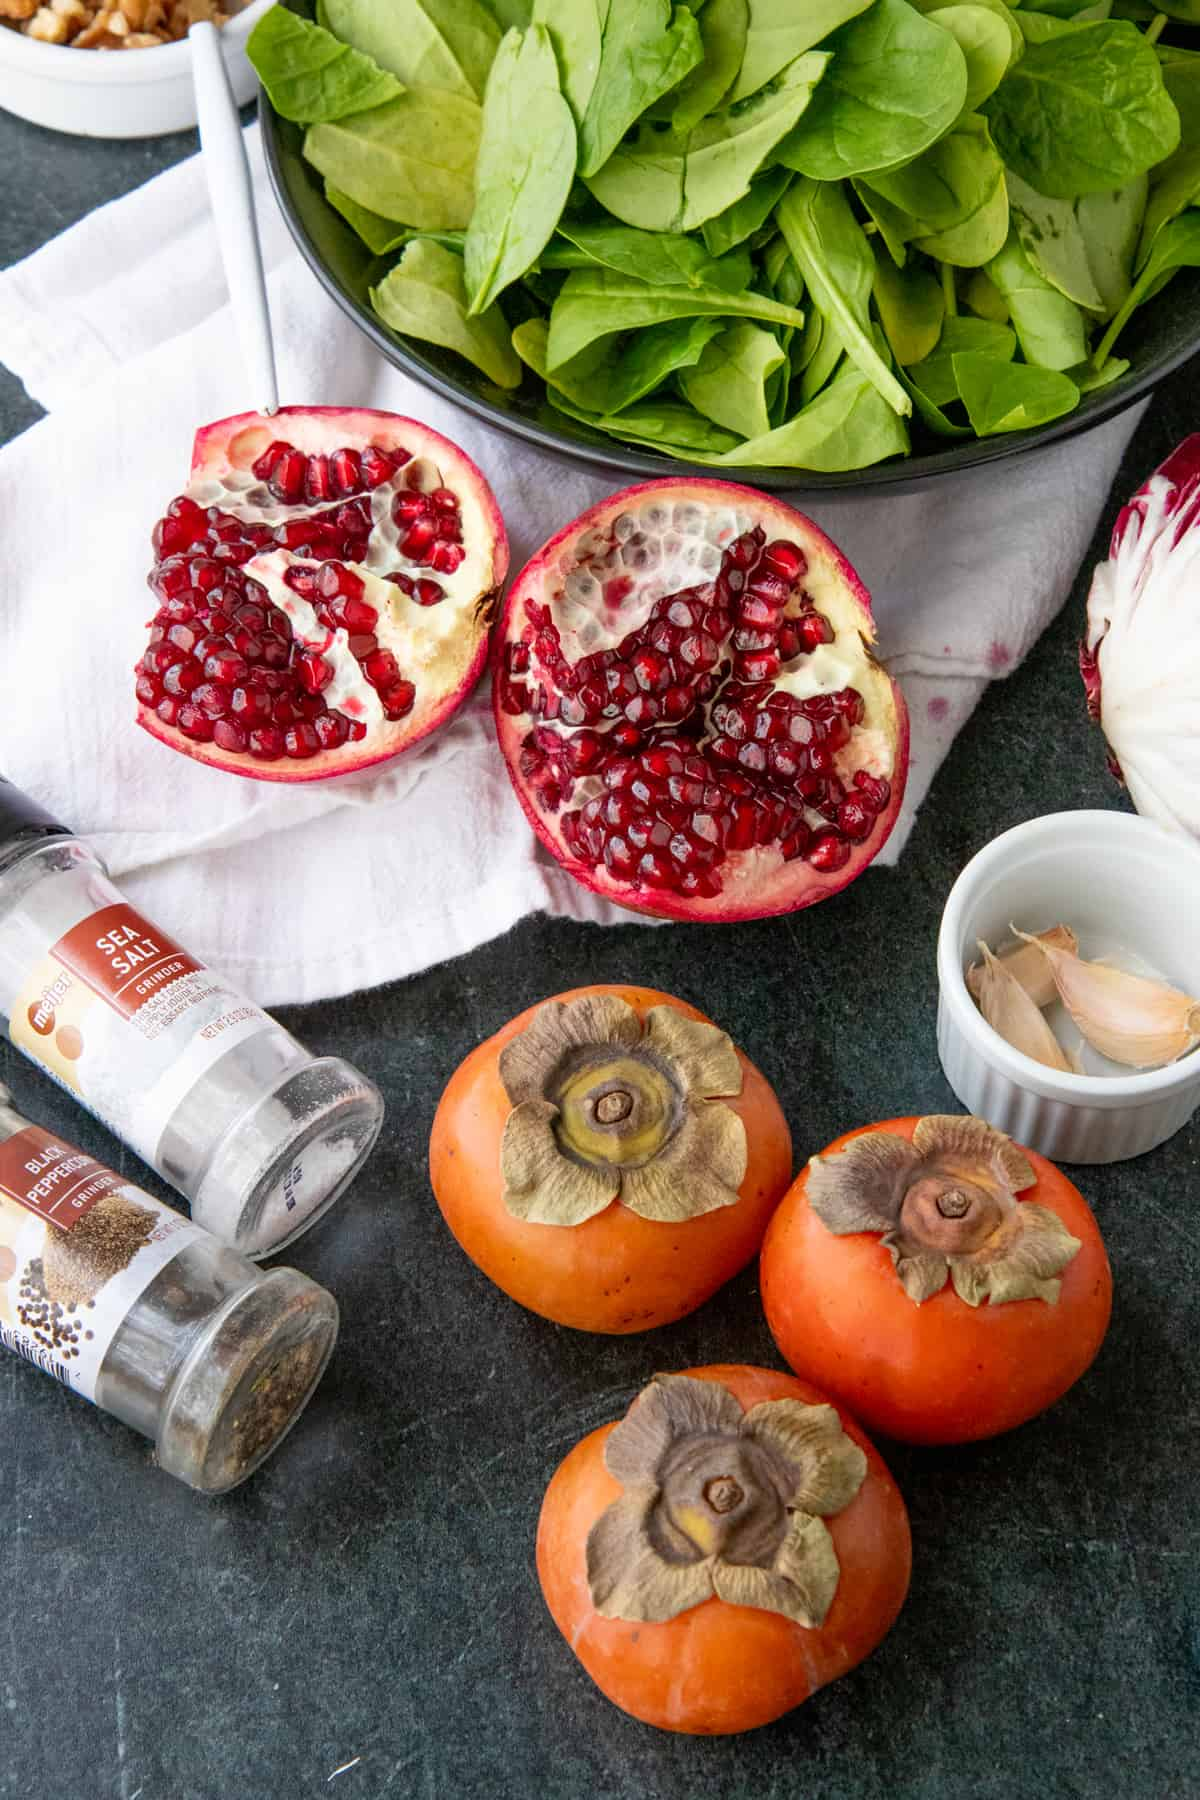 Persimmons, pomegranates, and spinach sit next to salt, pepper, and garlic.